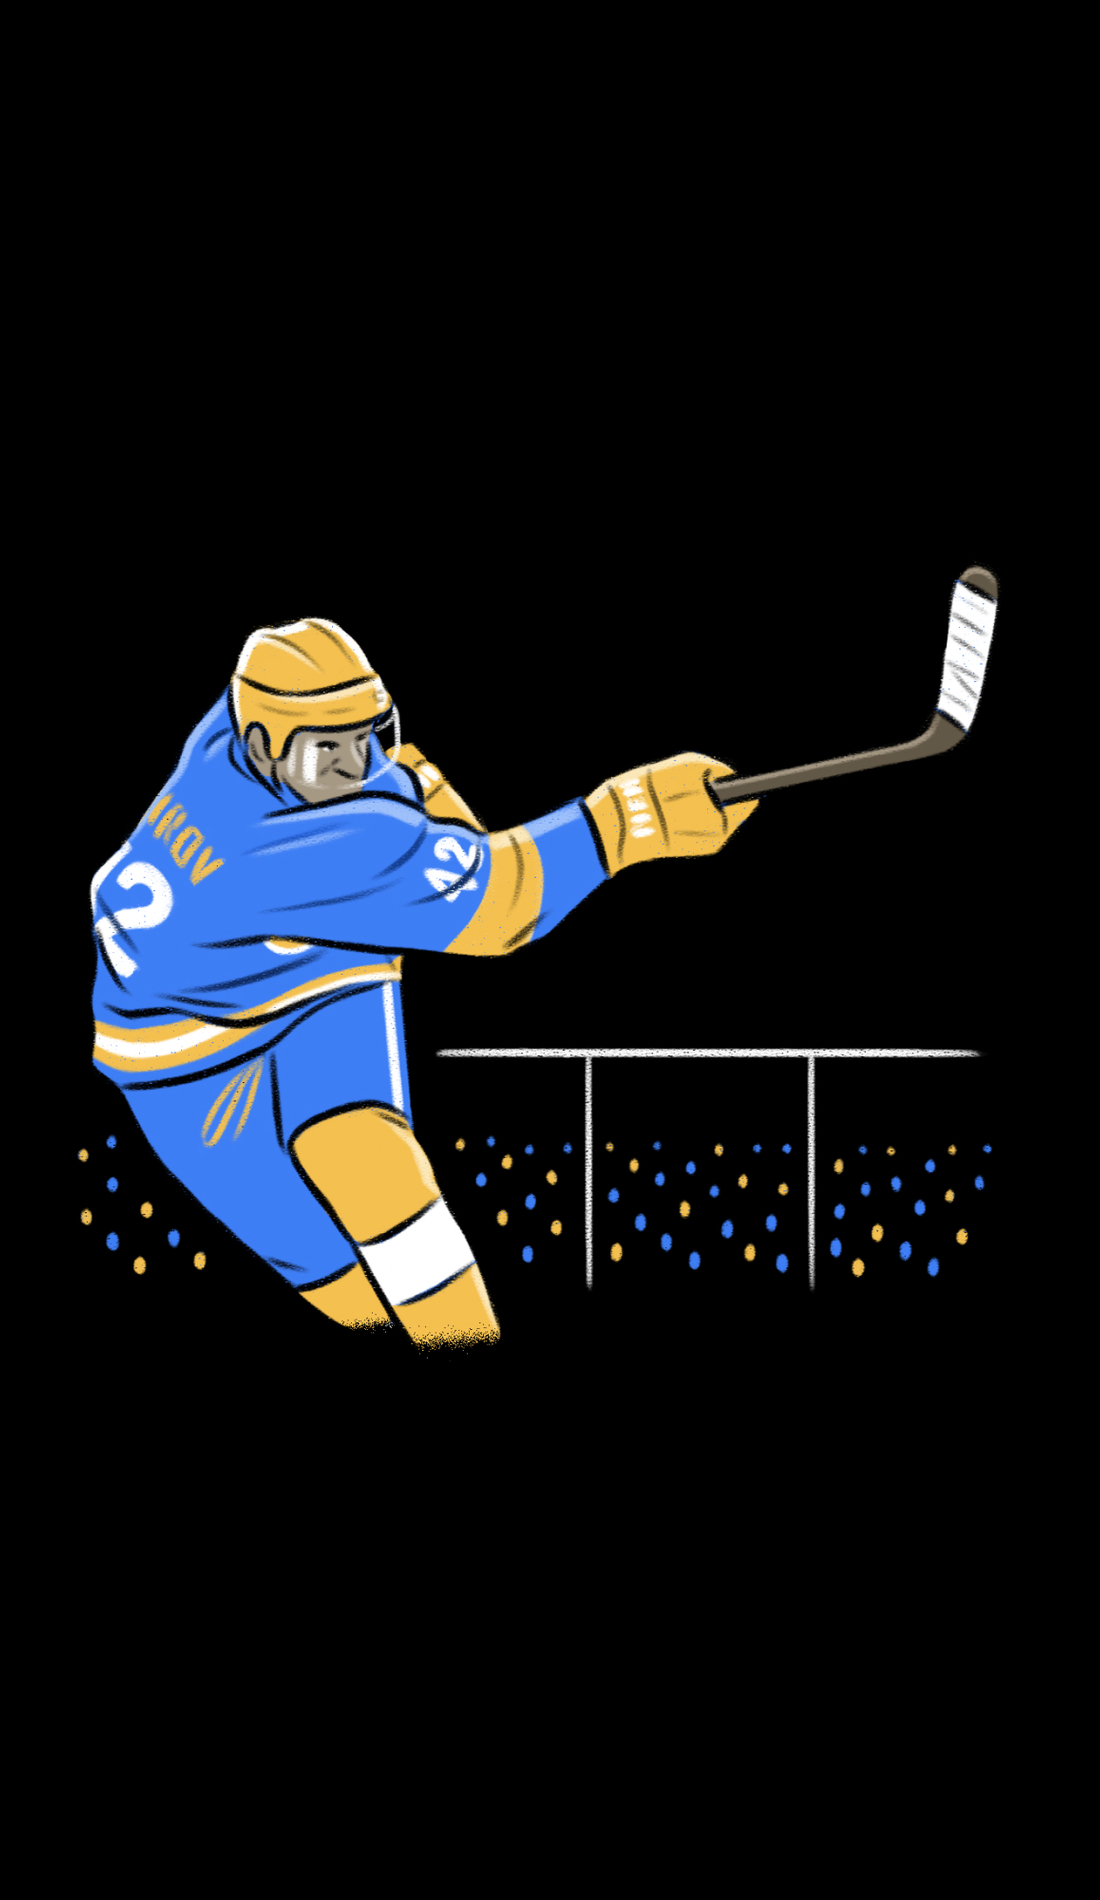 A Florida Everblades live event